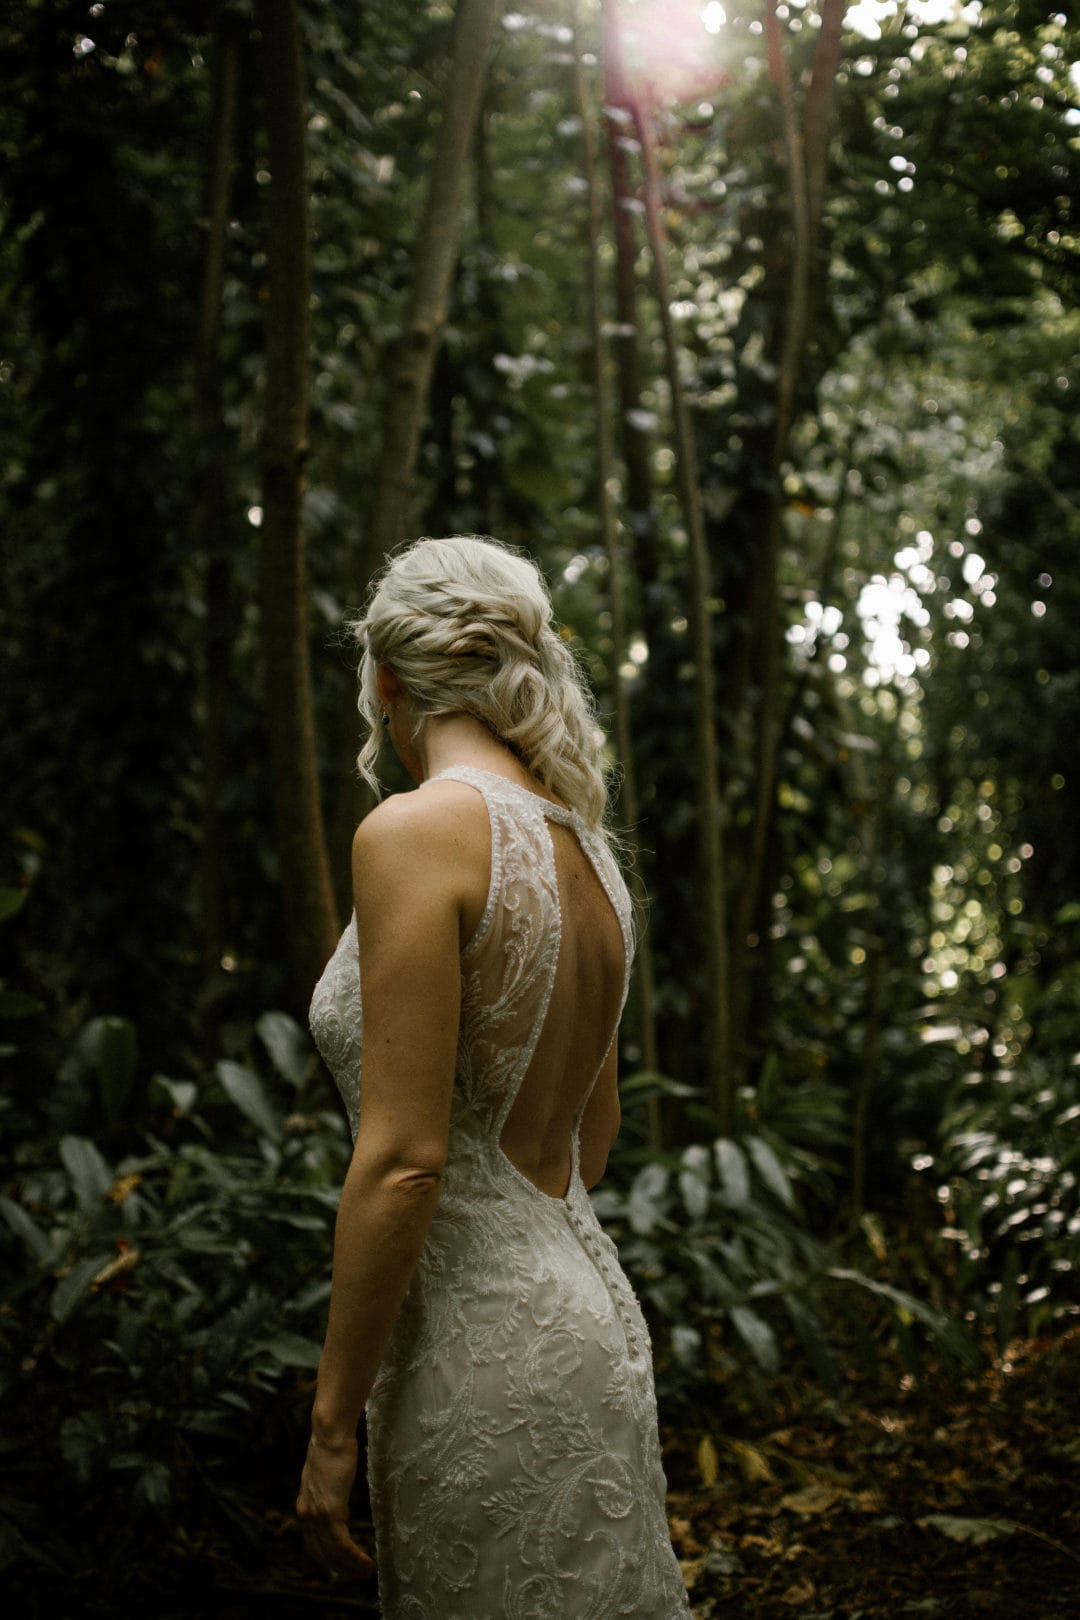 Our Favorite Boho Brides and Boho Wedding Dresses! - Maggie Bride wearing Blaise by Maggie Sottero